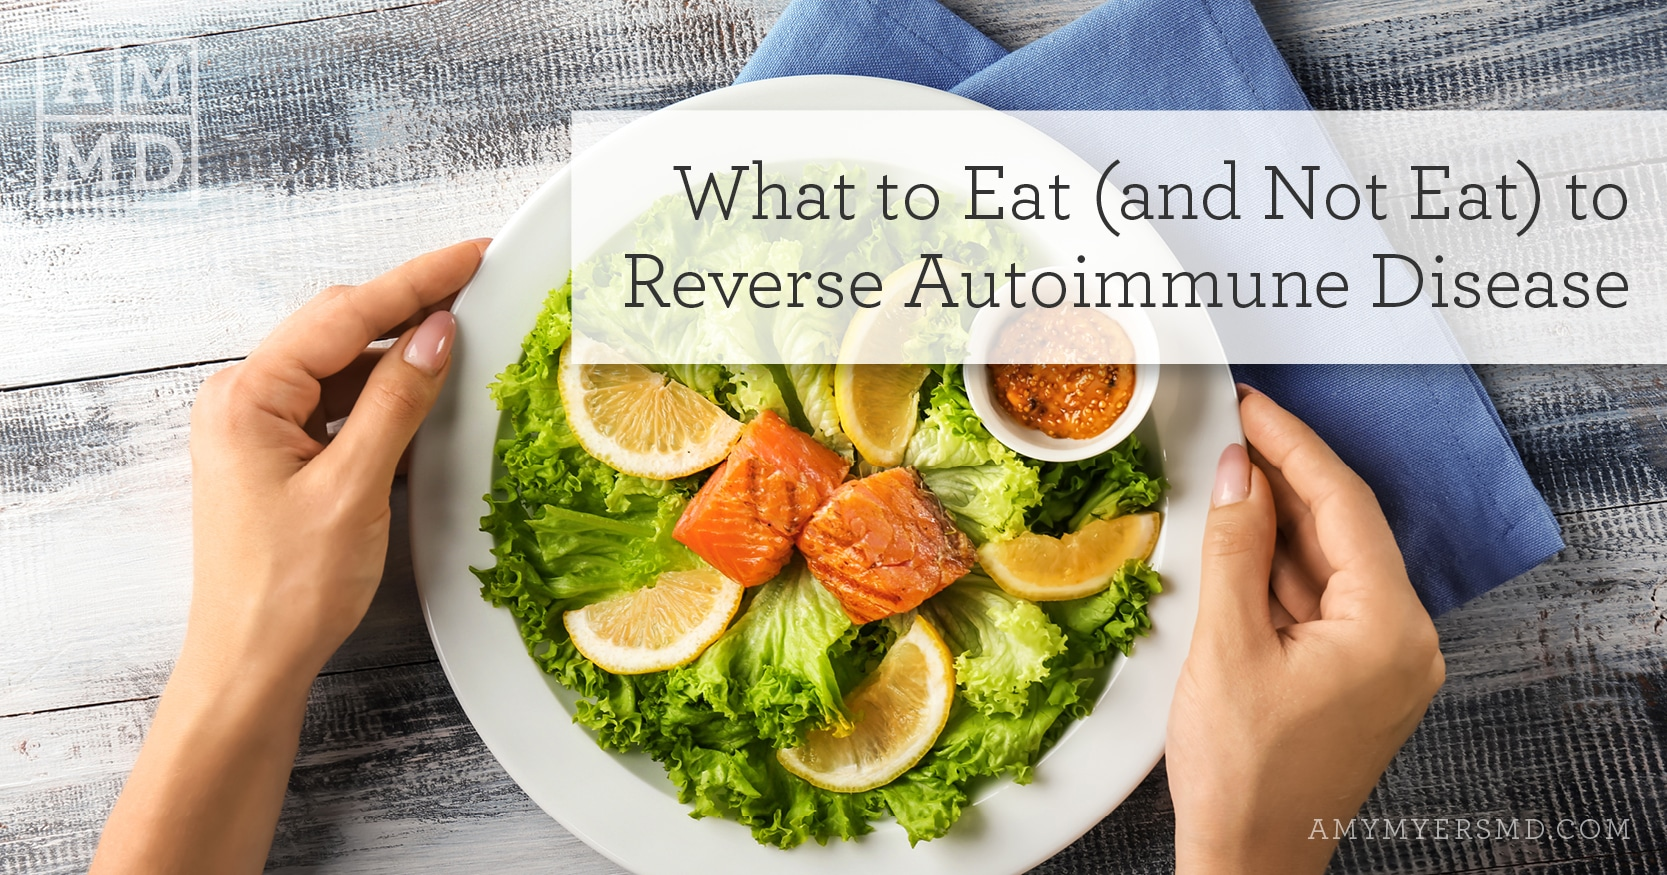 What to Eat (and Not Eat) to Reverse Autoimmune Disease - Amy Myers MD